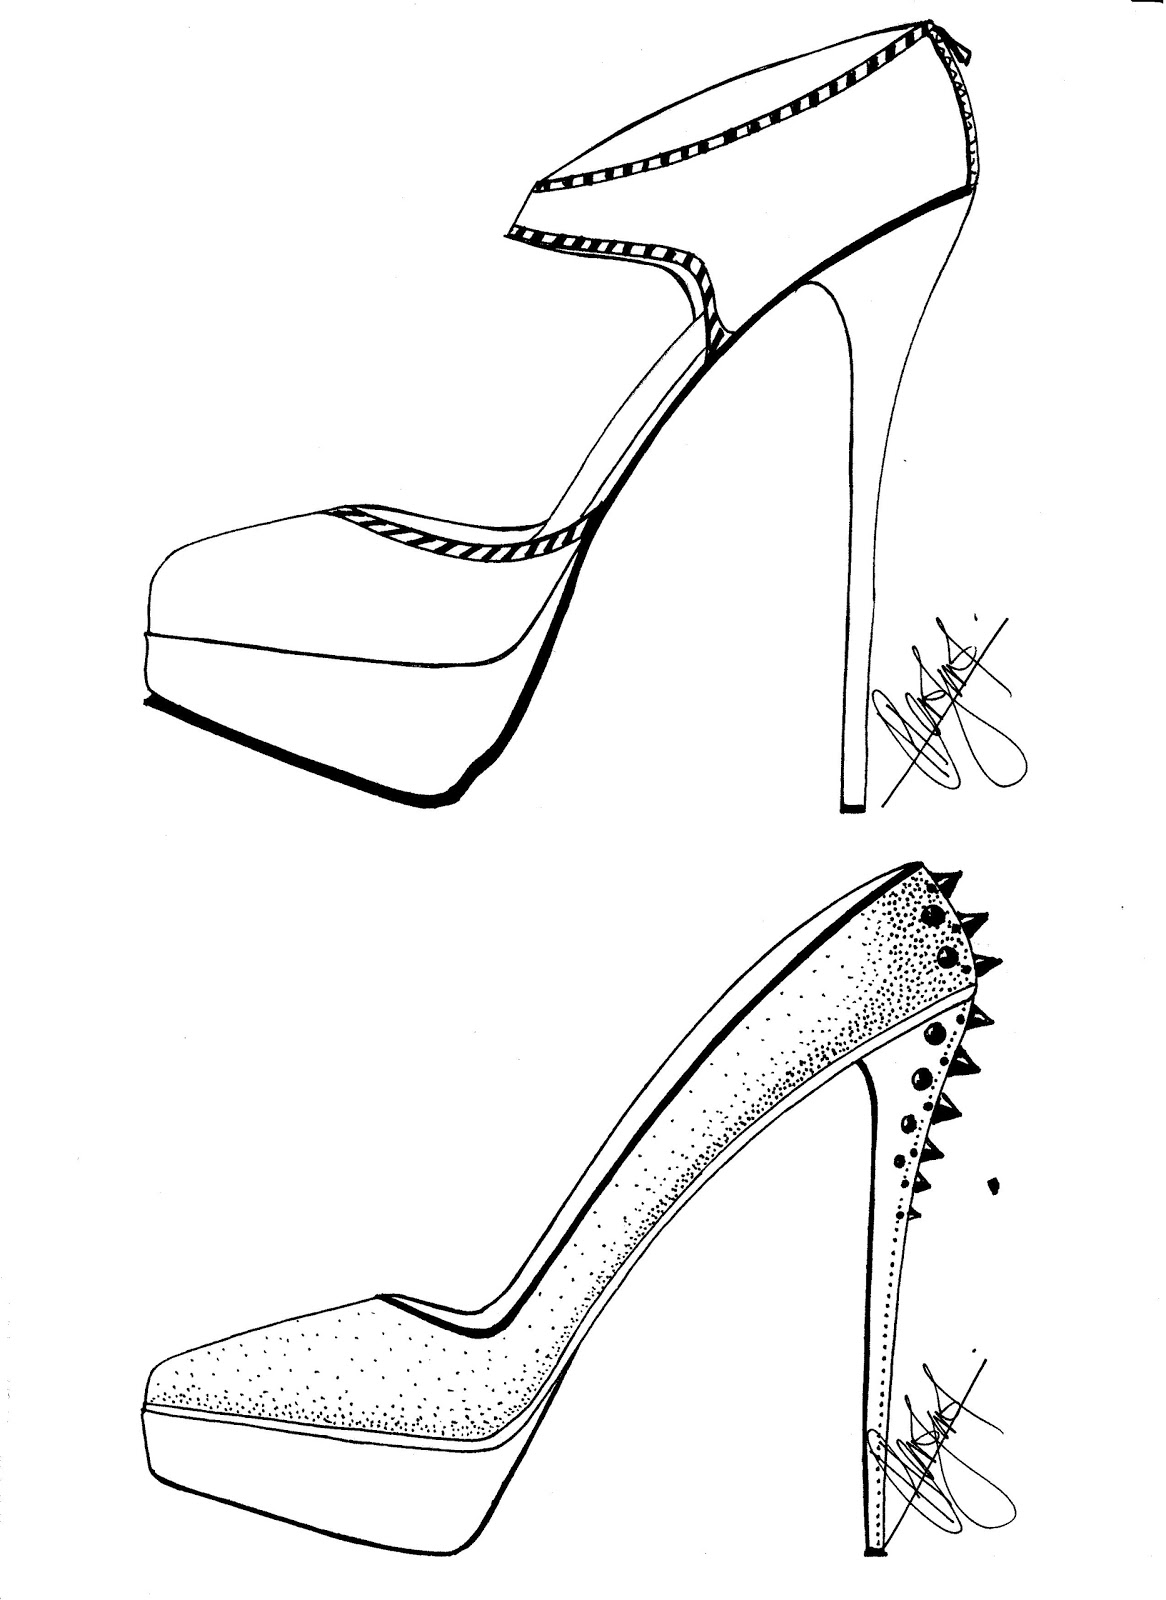 how to draw a high heel step by step pin by nam dreams on kỹ thuật in 2020 anime drawings a how heel by high draw step step to